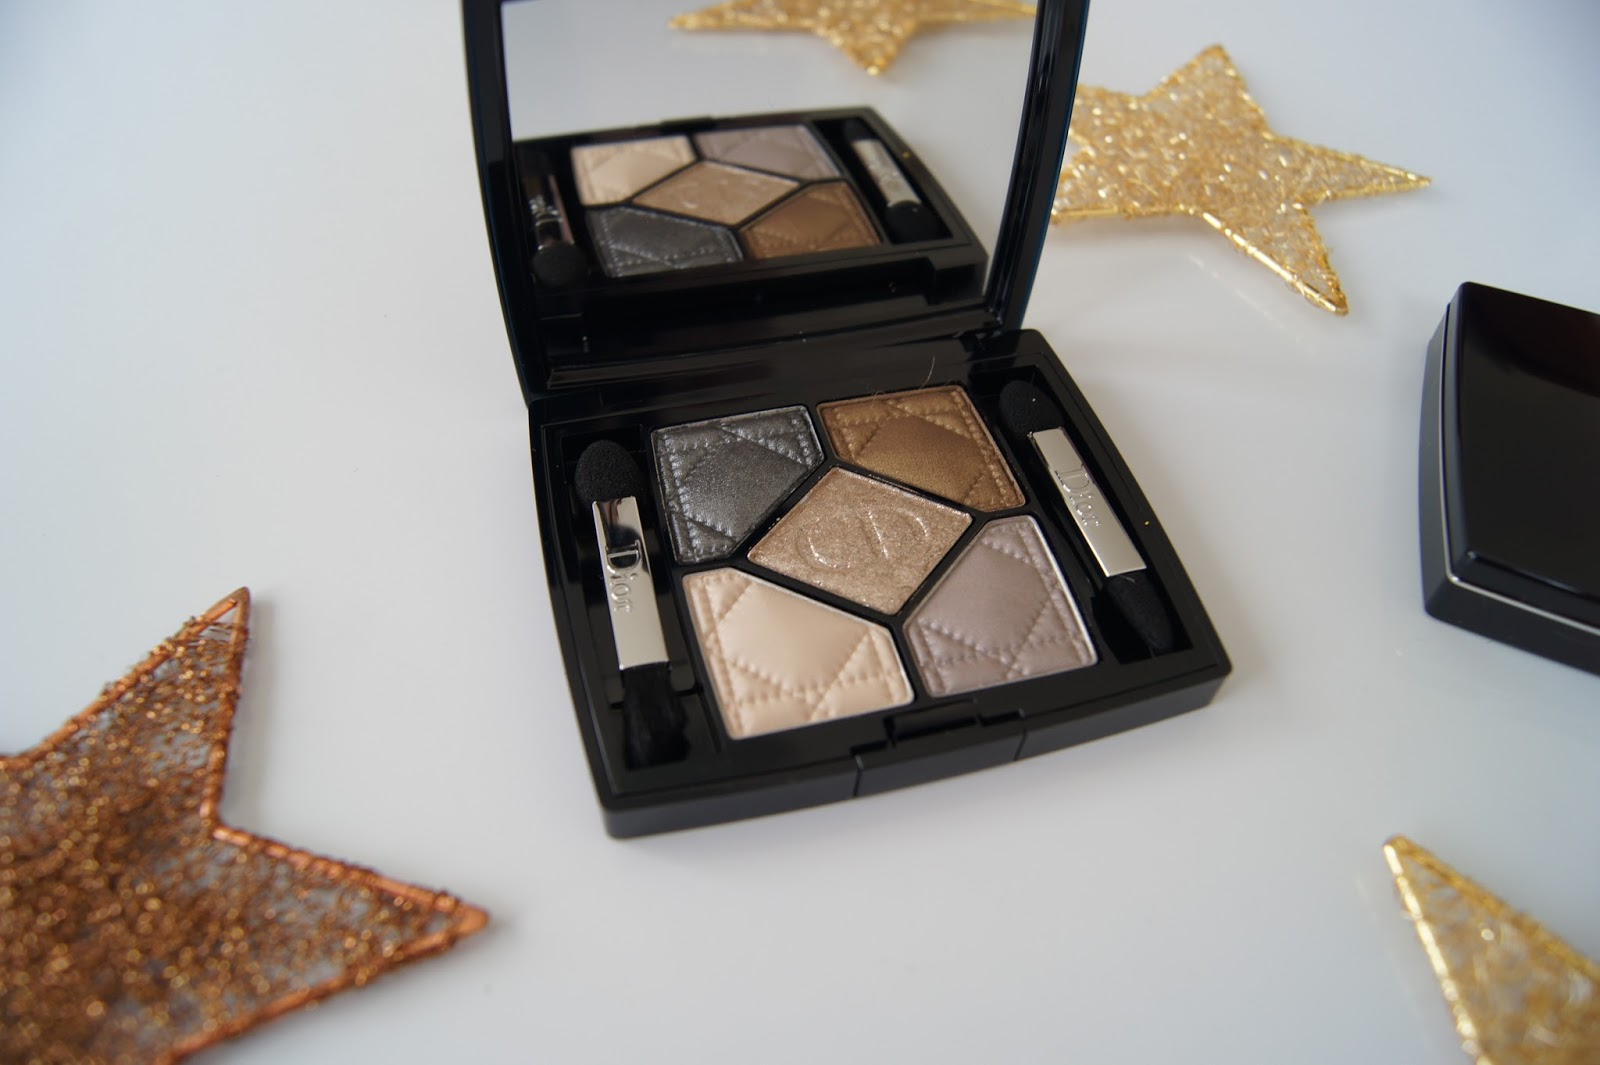 Dior Golden reflections palette